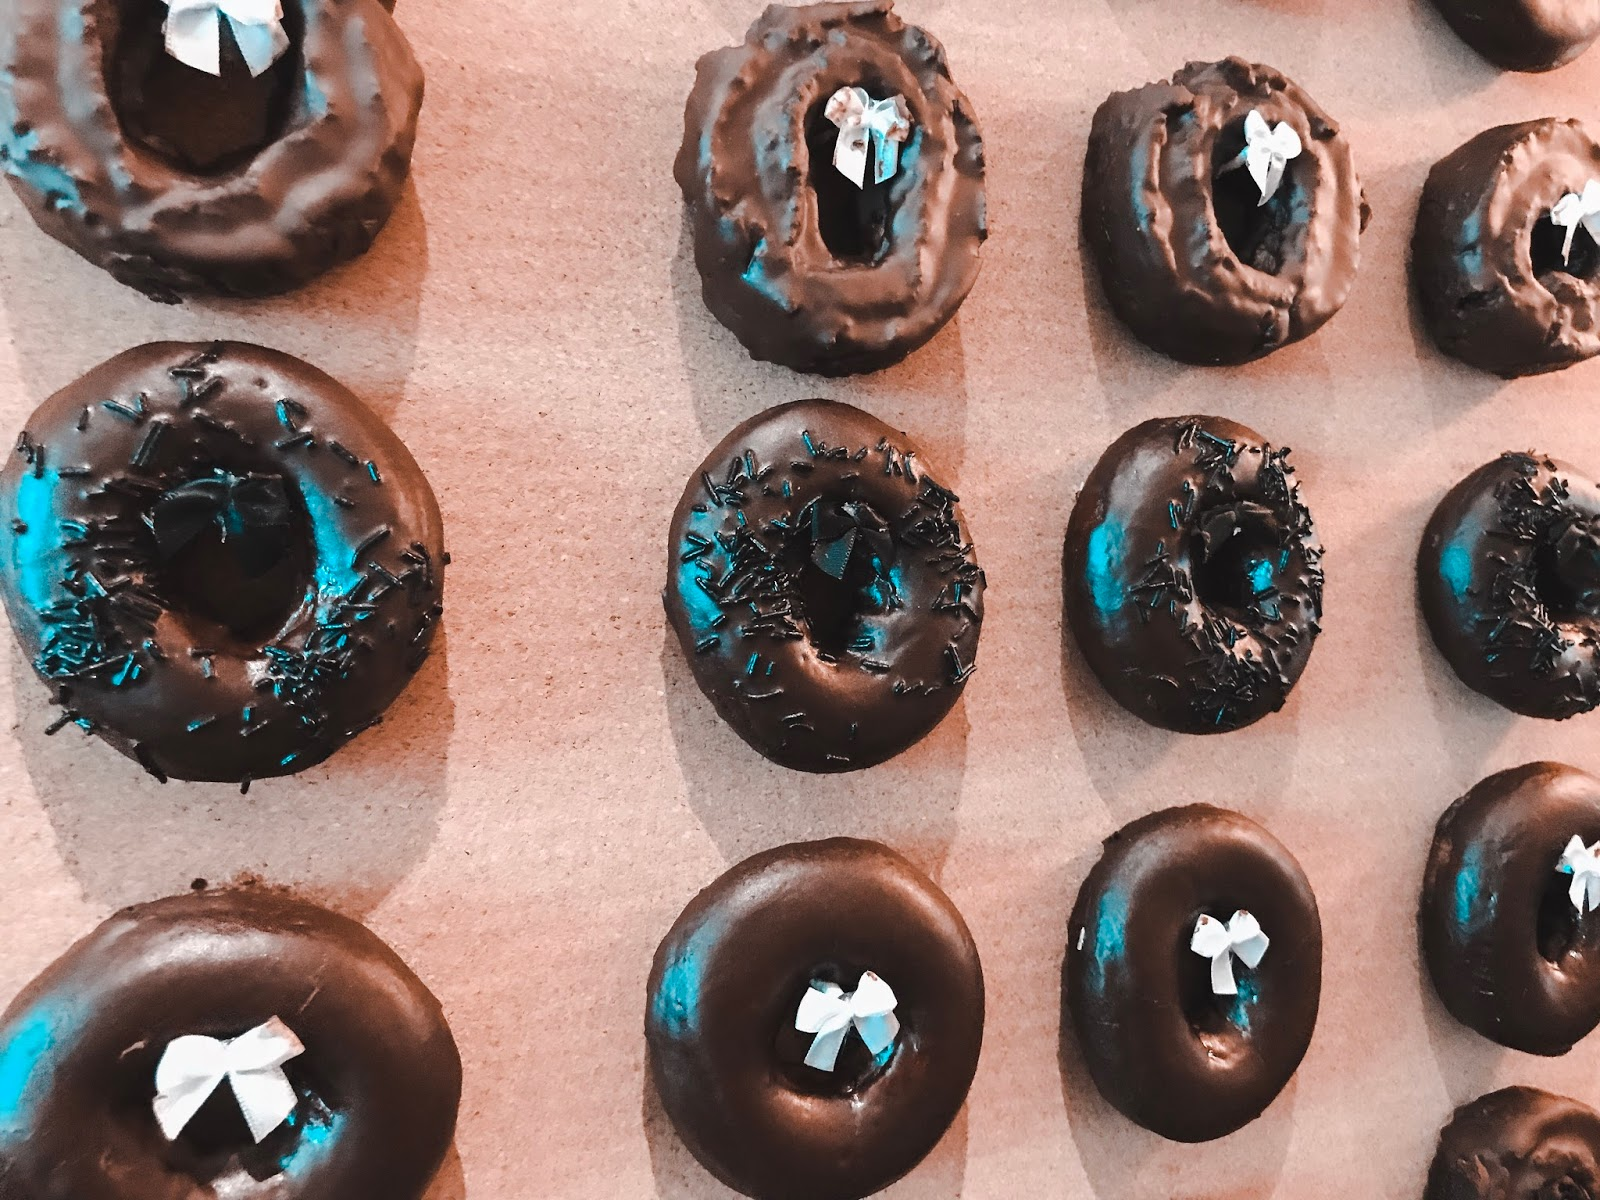 Krispy Kreme Doughnuts in CHOCOLATE